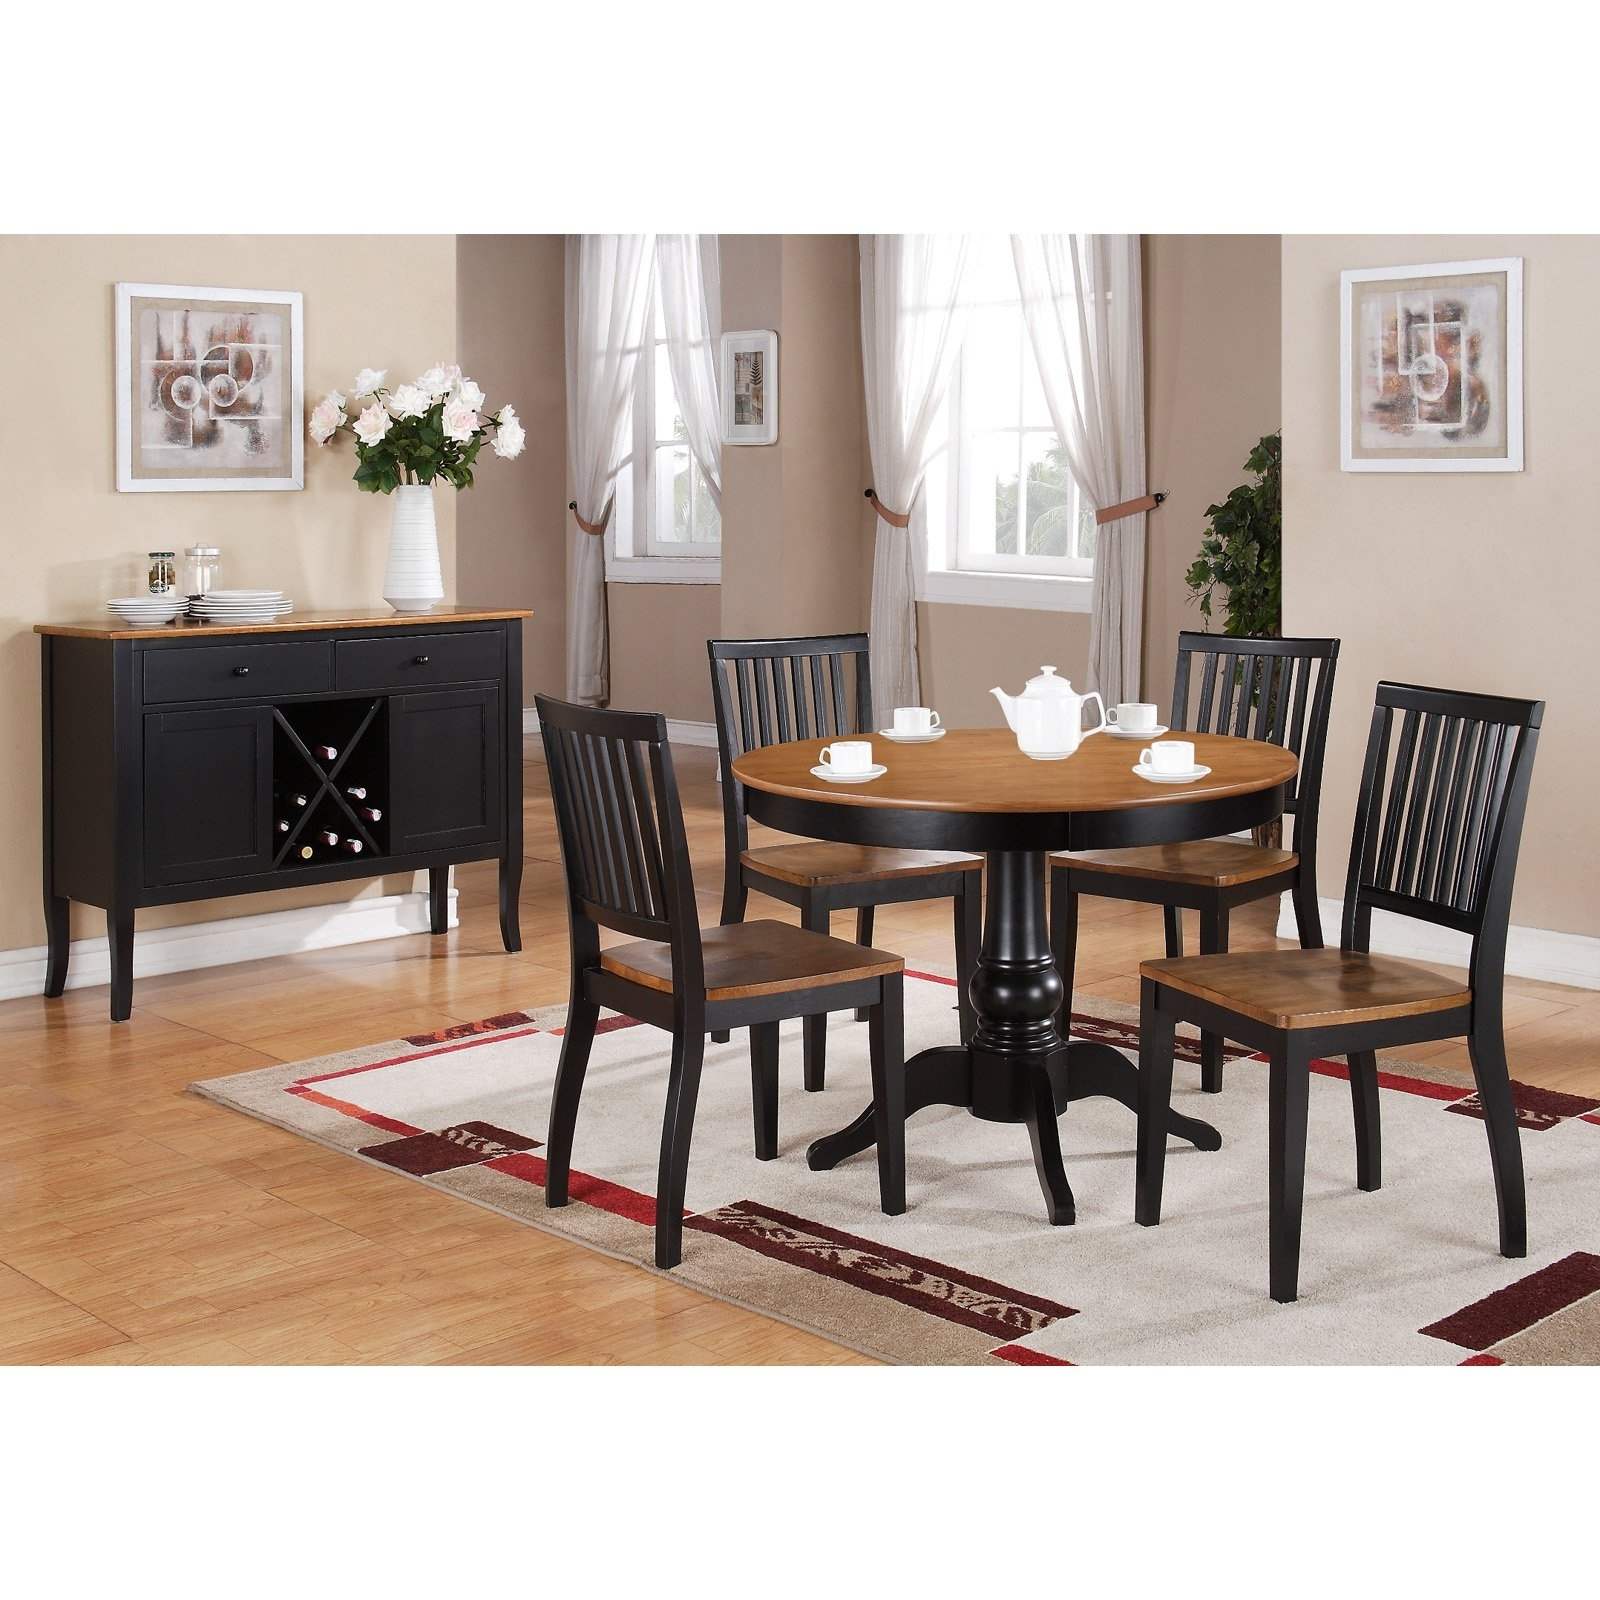 Candice Ii 5 Piece Round Dining Sets With Slat Back Side Chairs Inside Fashionable Steve Silver 5 Piece Candice Two Tone Round Pedestal Dining Table (View 7 of 25)